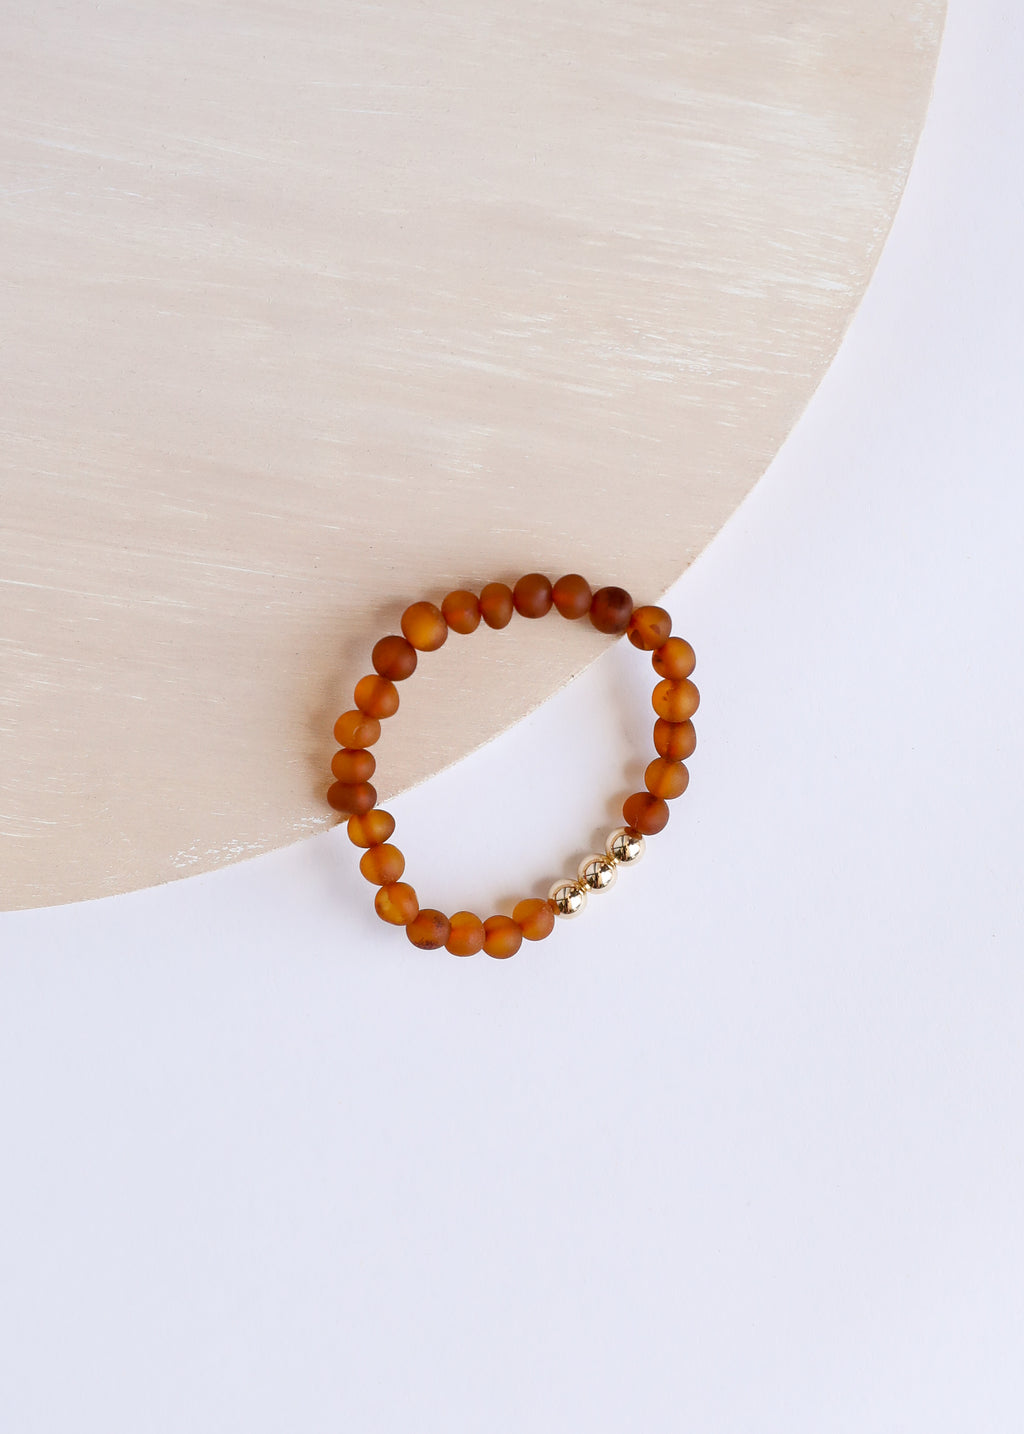 Raw Cognac Amber + 14k Gold || Adult Bracelet